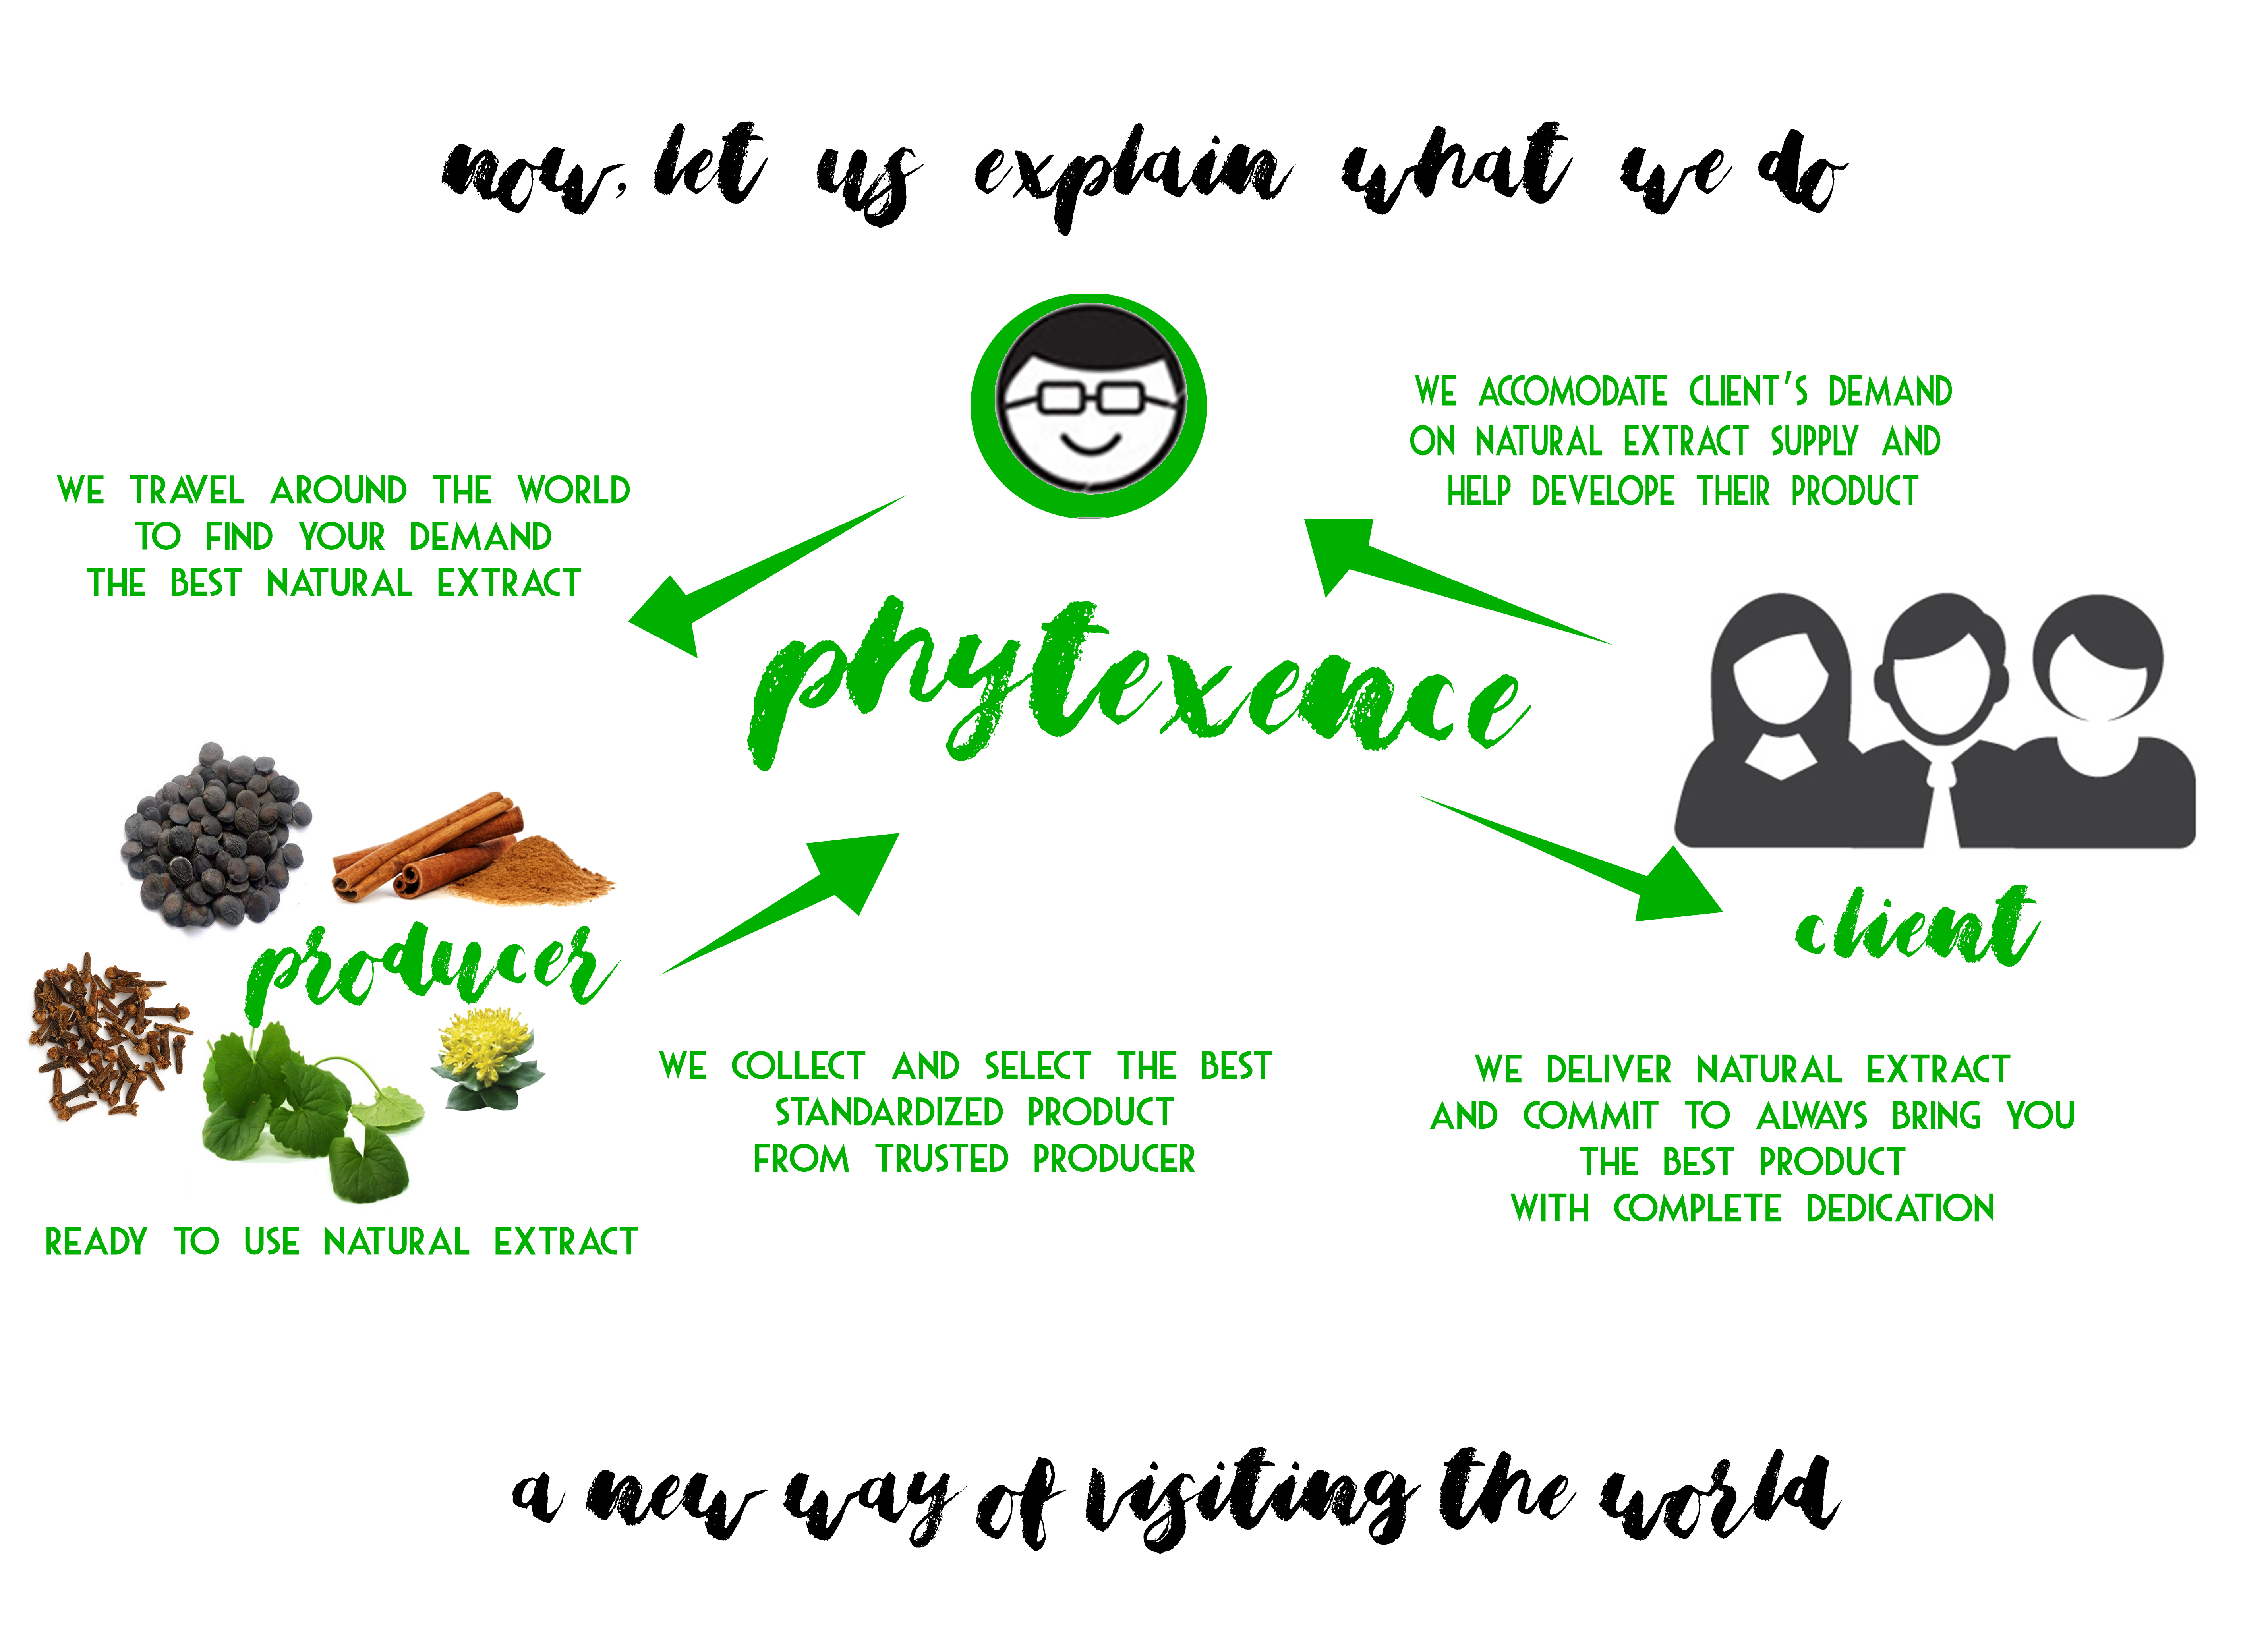 cycle-phytexence-what-we-do